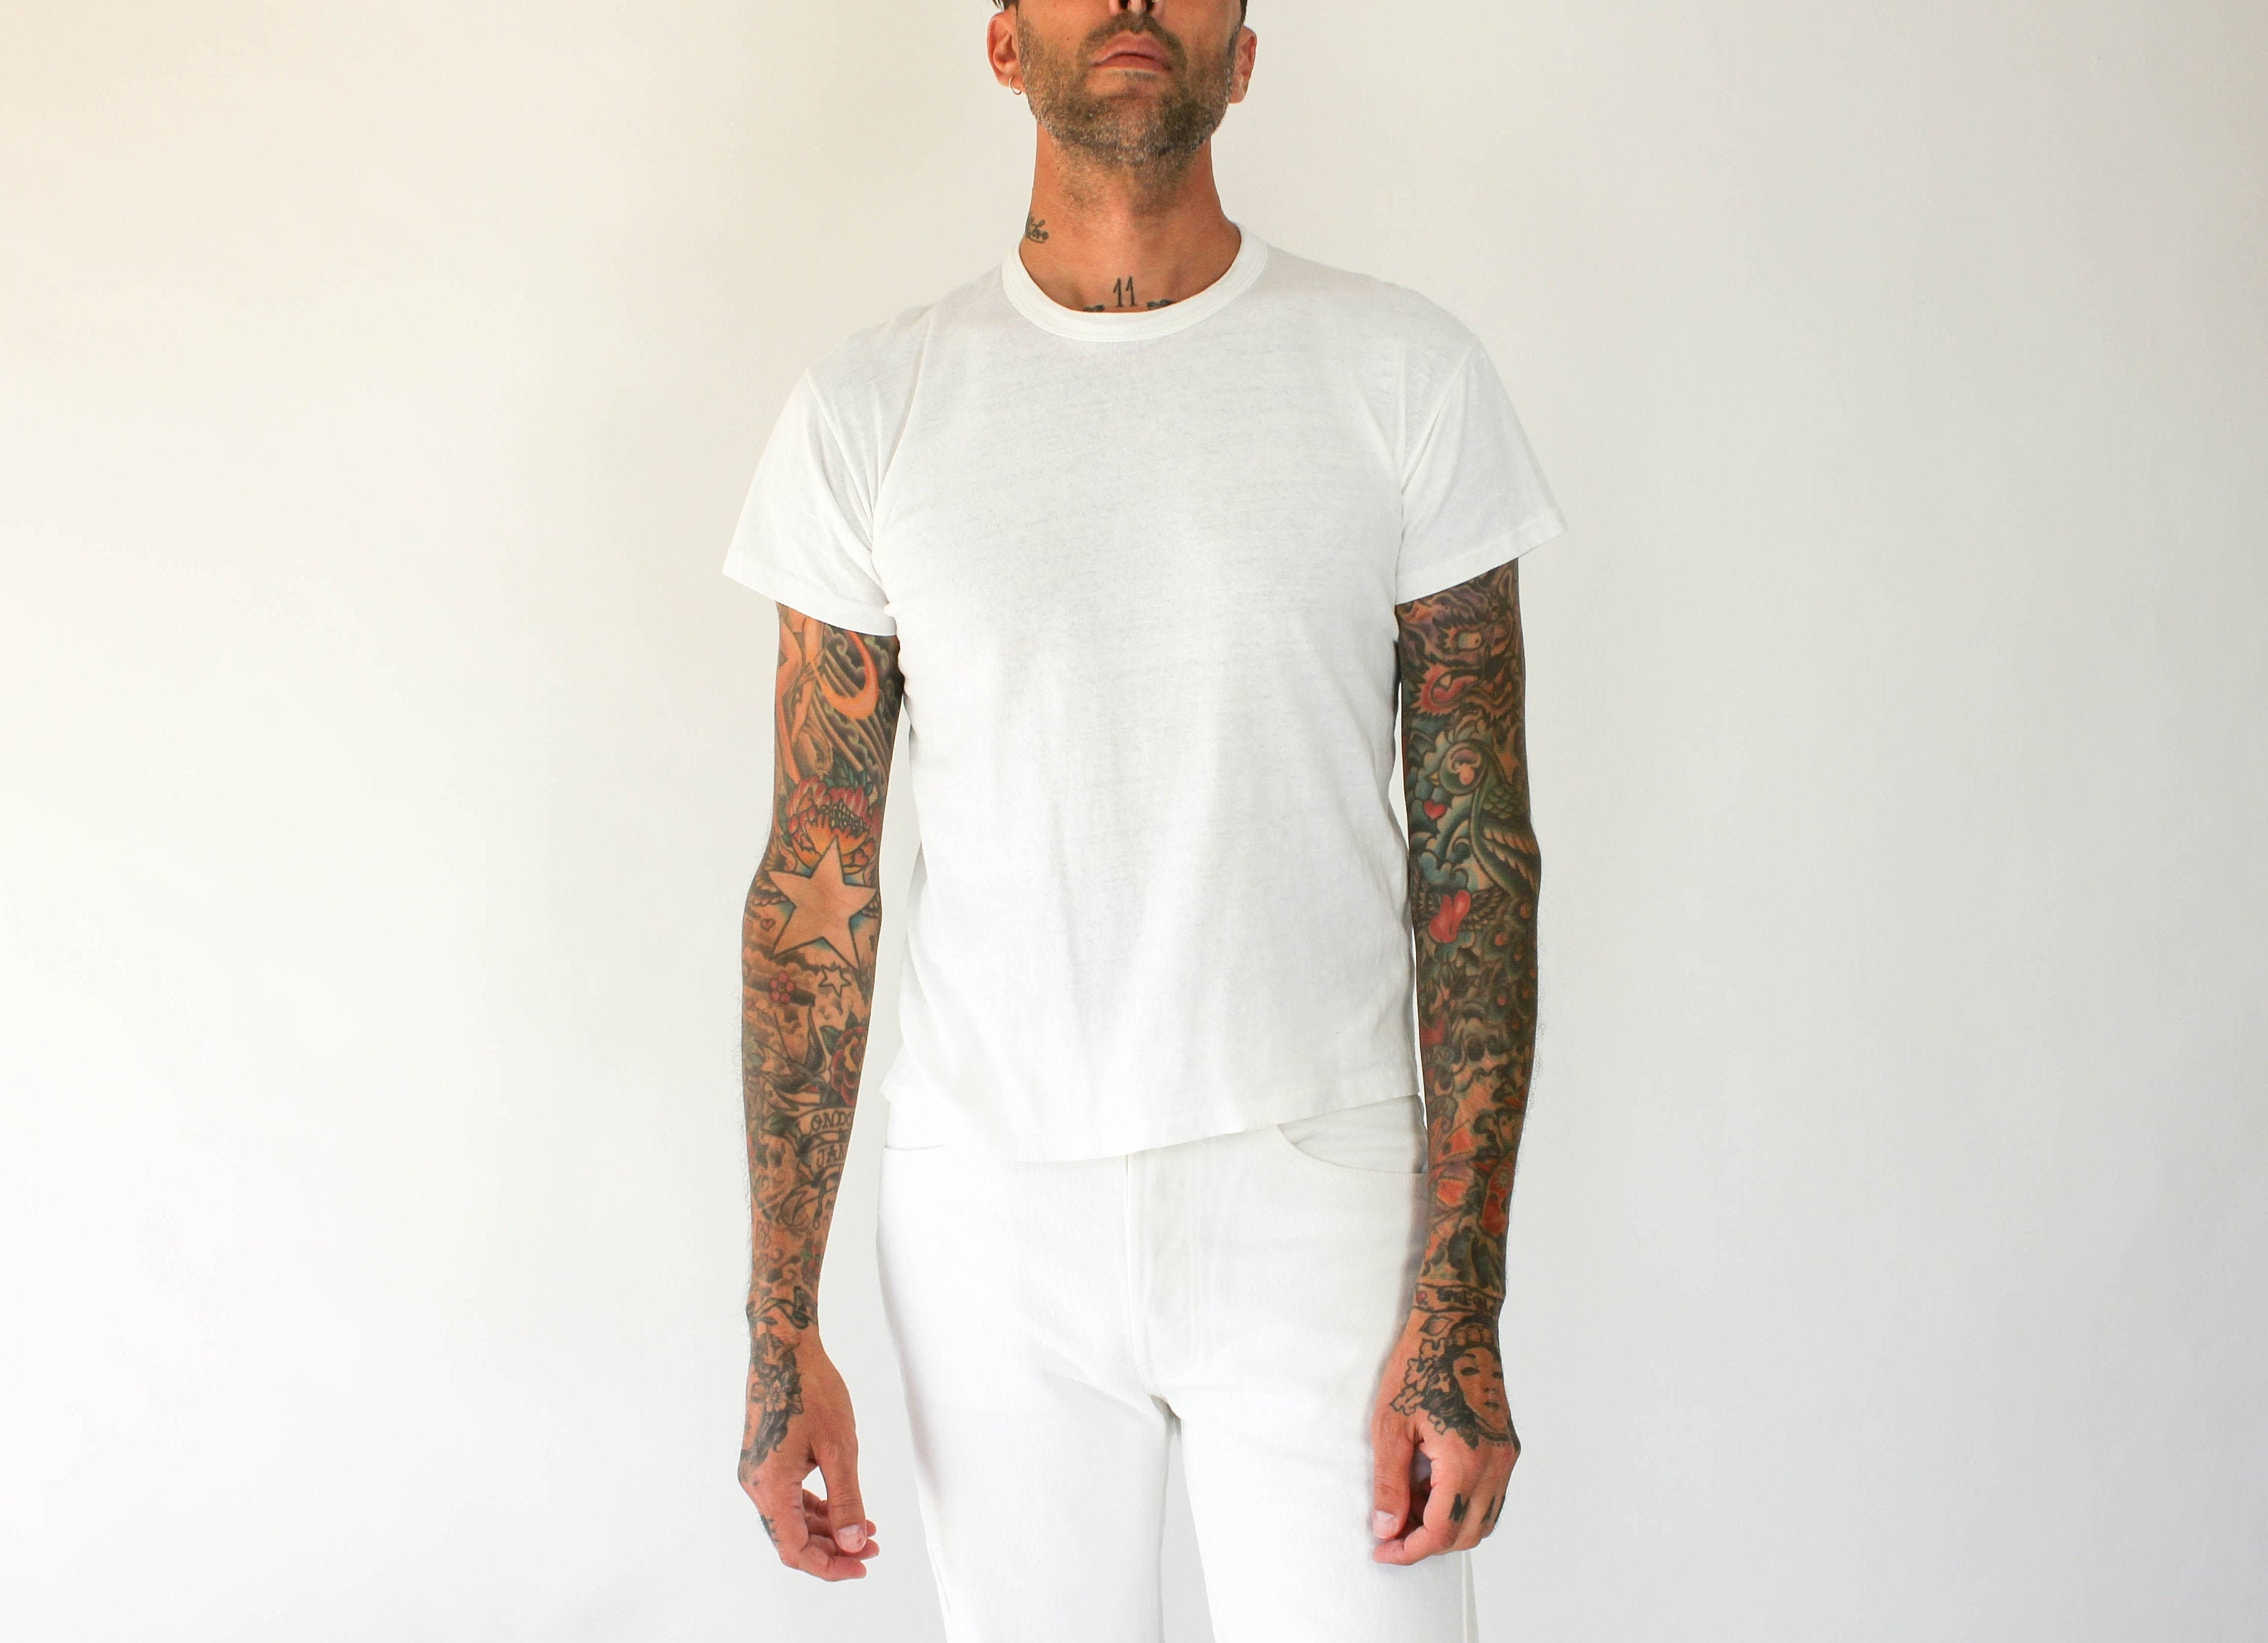 1970s Men's Shirt Styles – Vintage 70s Shirts for Guys Vintage 80S Russell Athletic Distressed Blank White Single Stitch Tee Shirt  Made in Usa 100 Gauzy Cotton 1970S Retro T-Shirt $56.00 AT vintagedancer.com